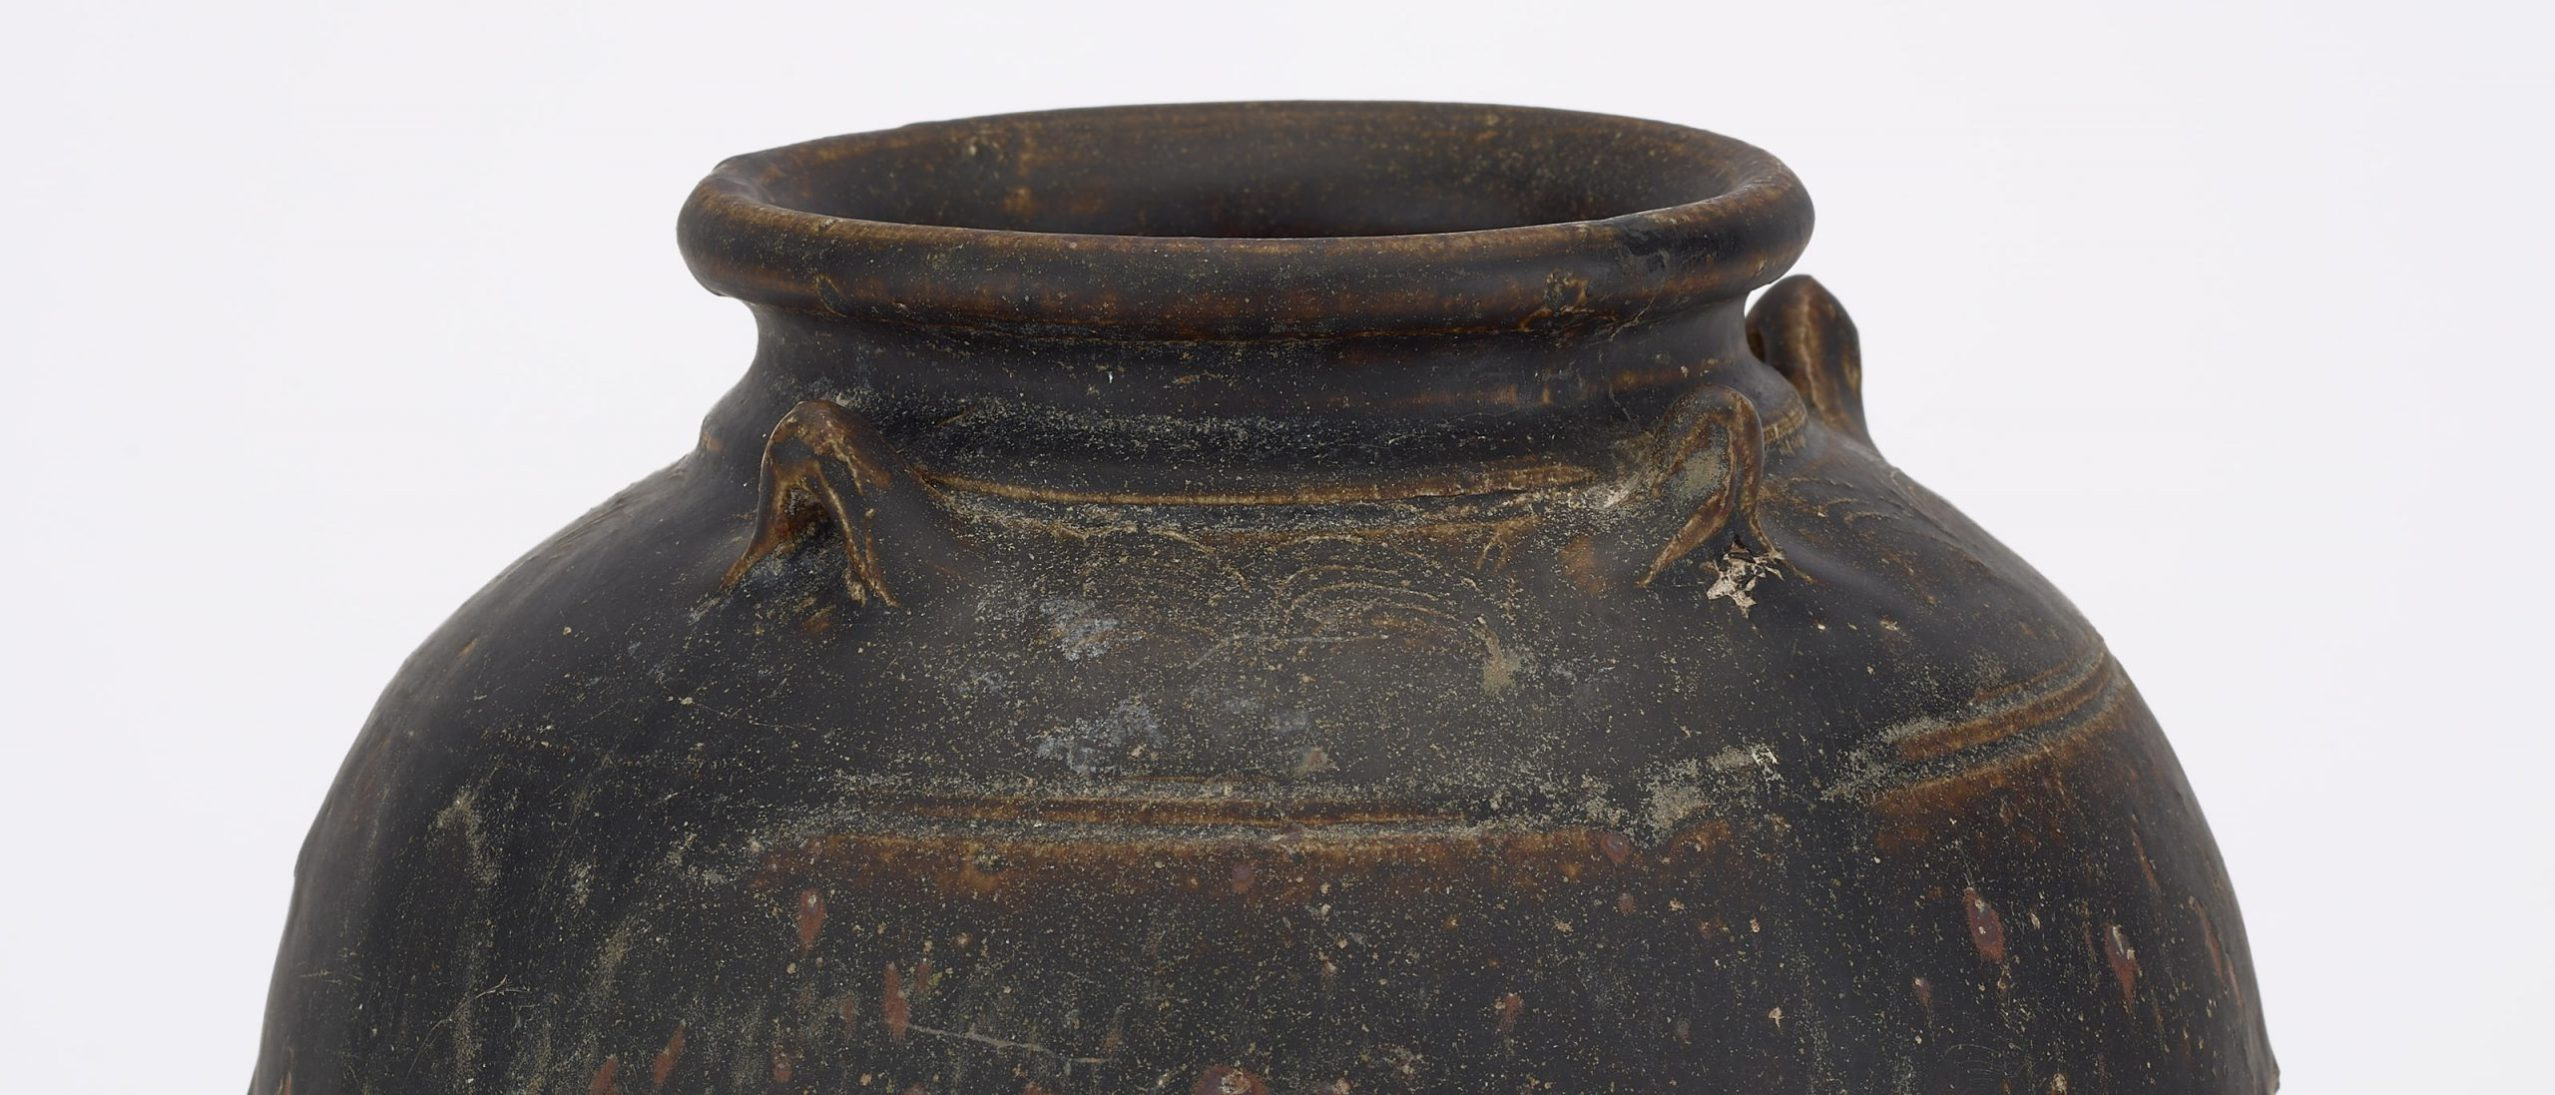 detail from jar with four lugs. the mouth of a rounded brown jug with three lugs visible